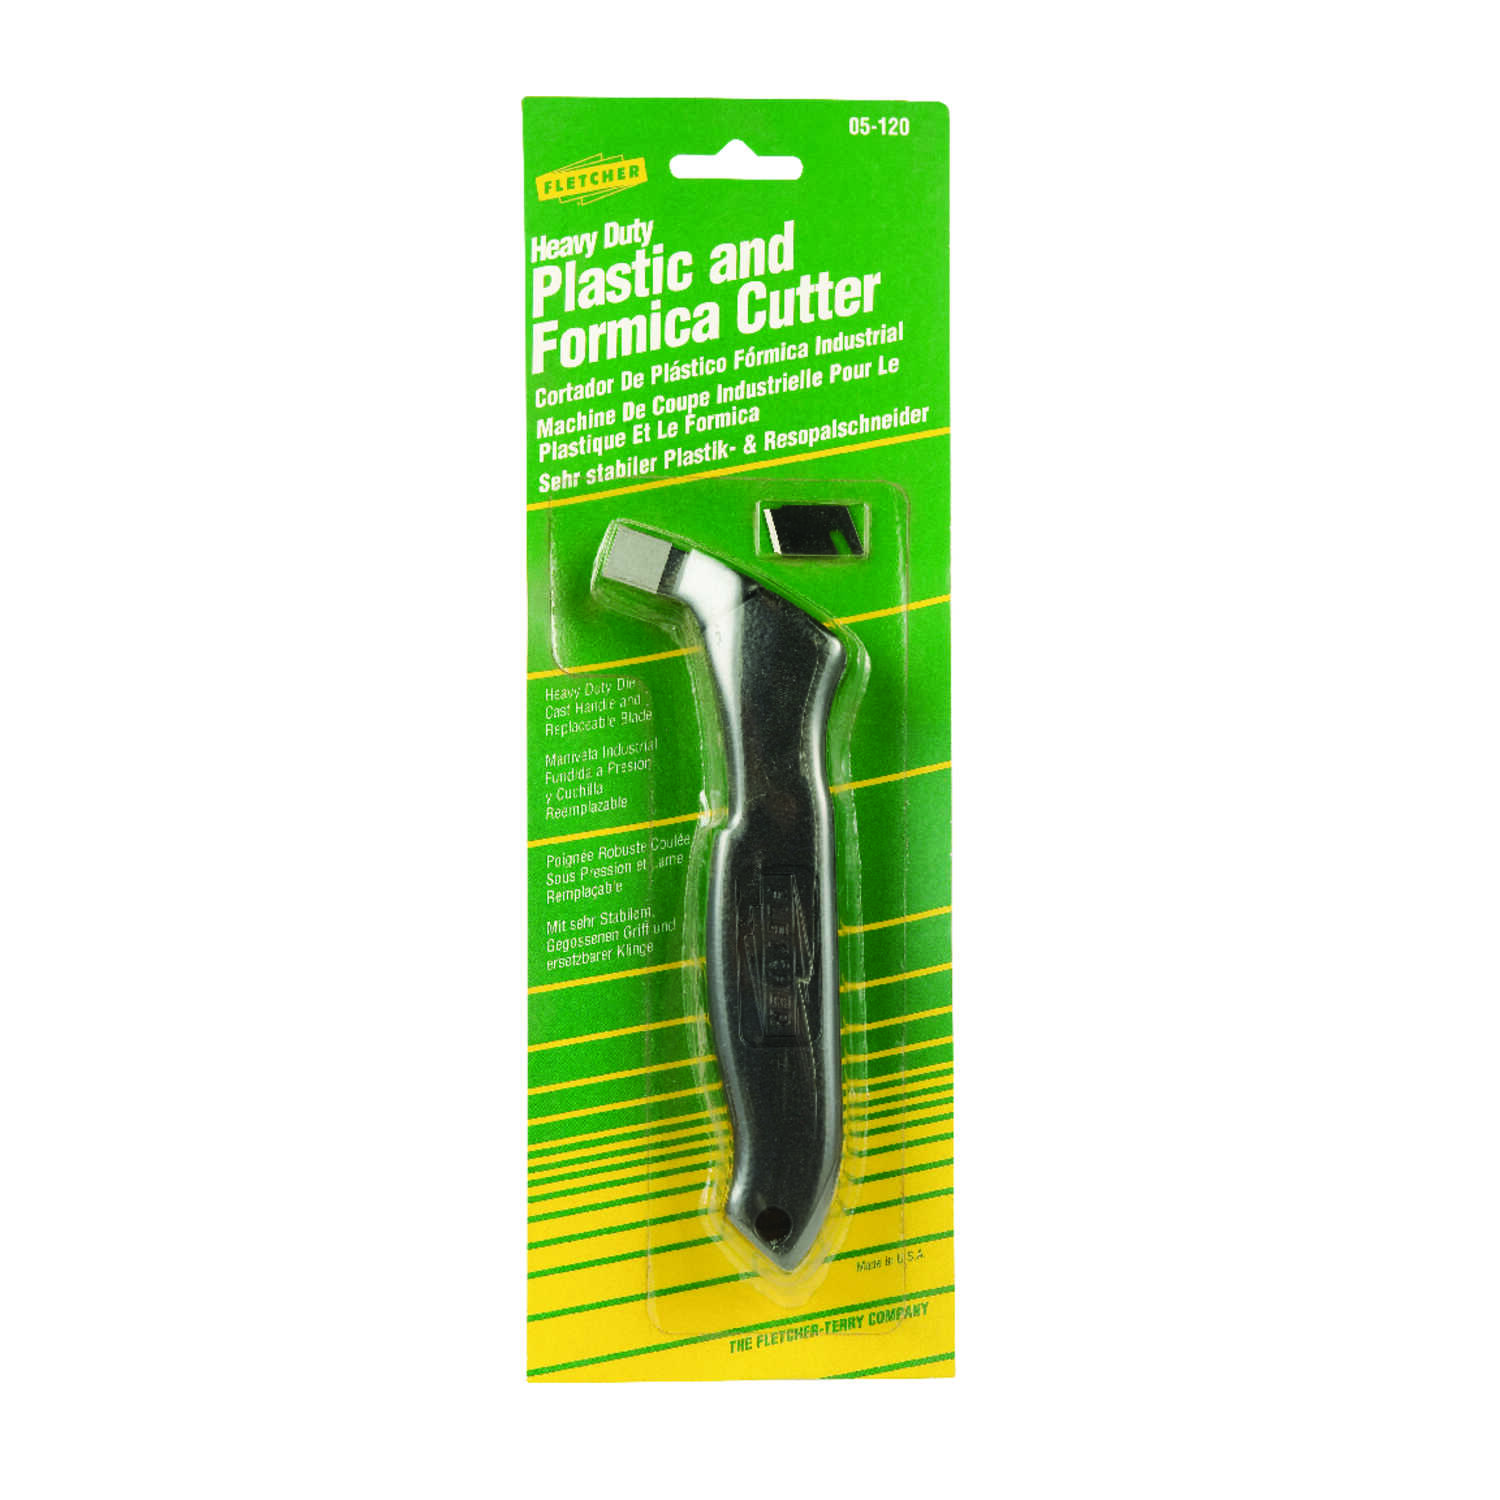 Fletcher  Plastic and Formica  4 in. 0.15 in.  x .33 in. L Black  Cutter  Steel  Fixed Blade  1 pk